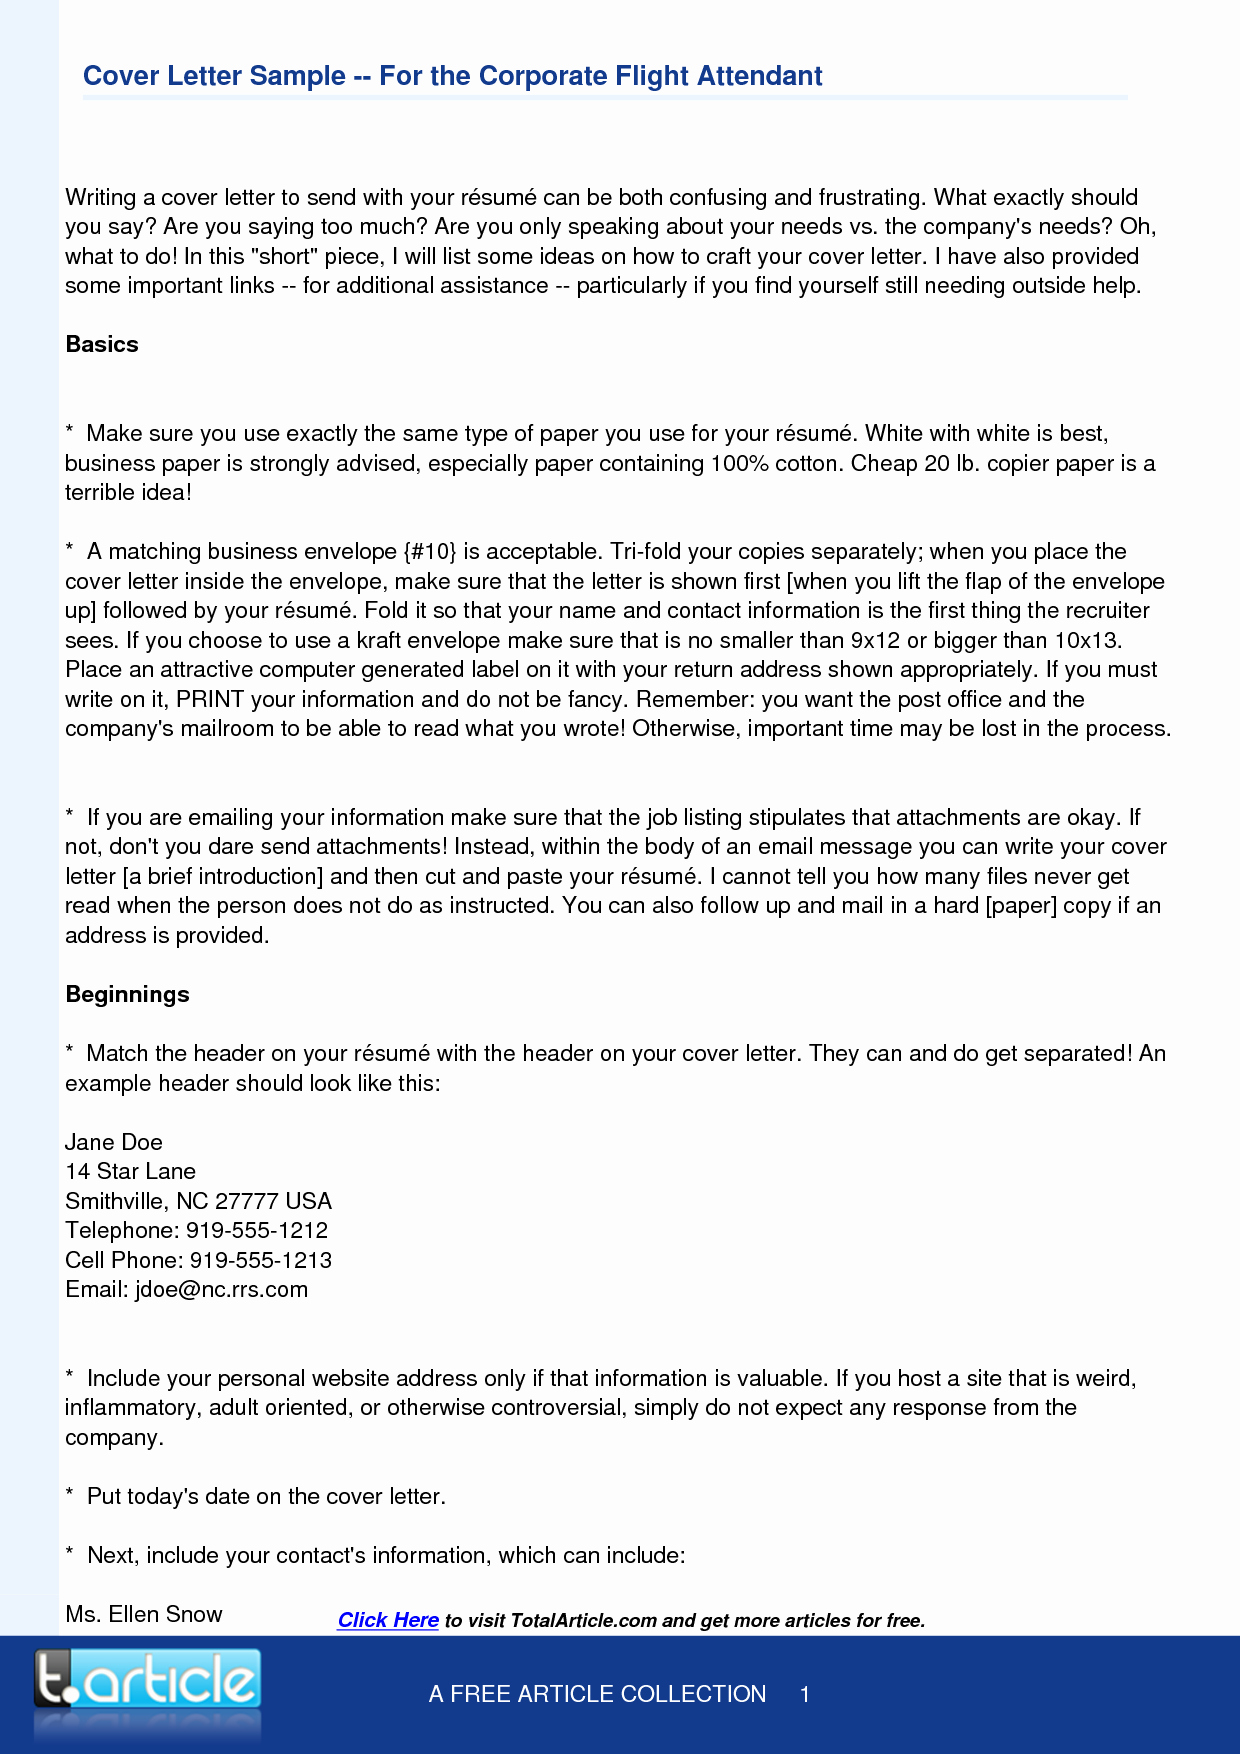 Cover Letter for Flight attendant Beautiful Flight attendant Cover Letter Template